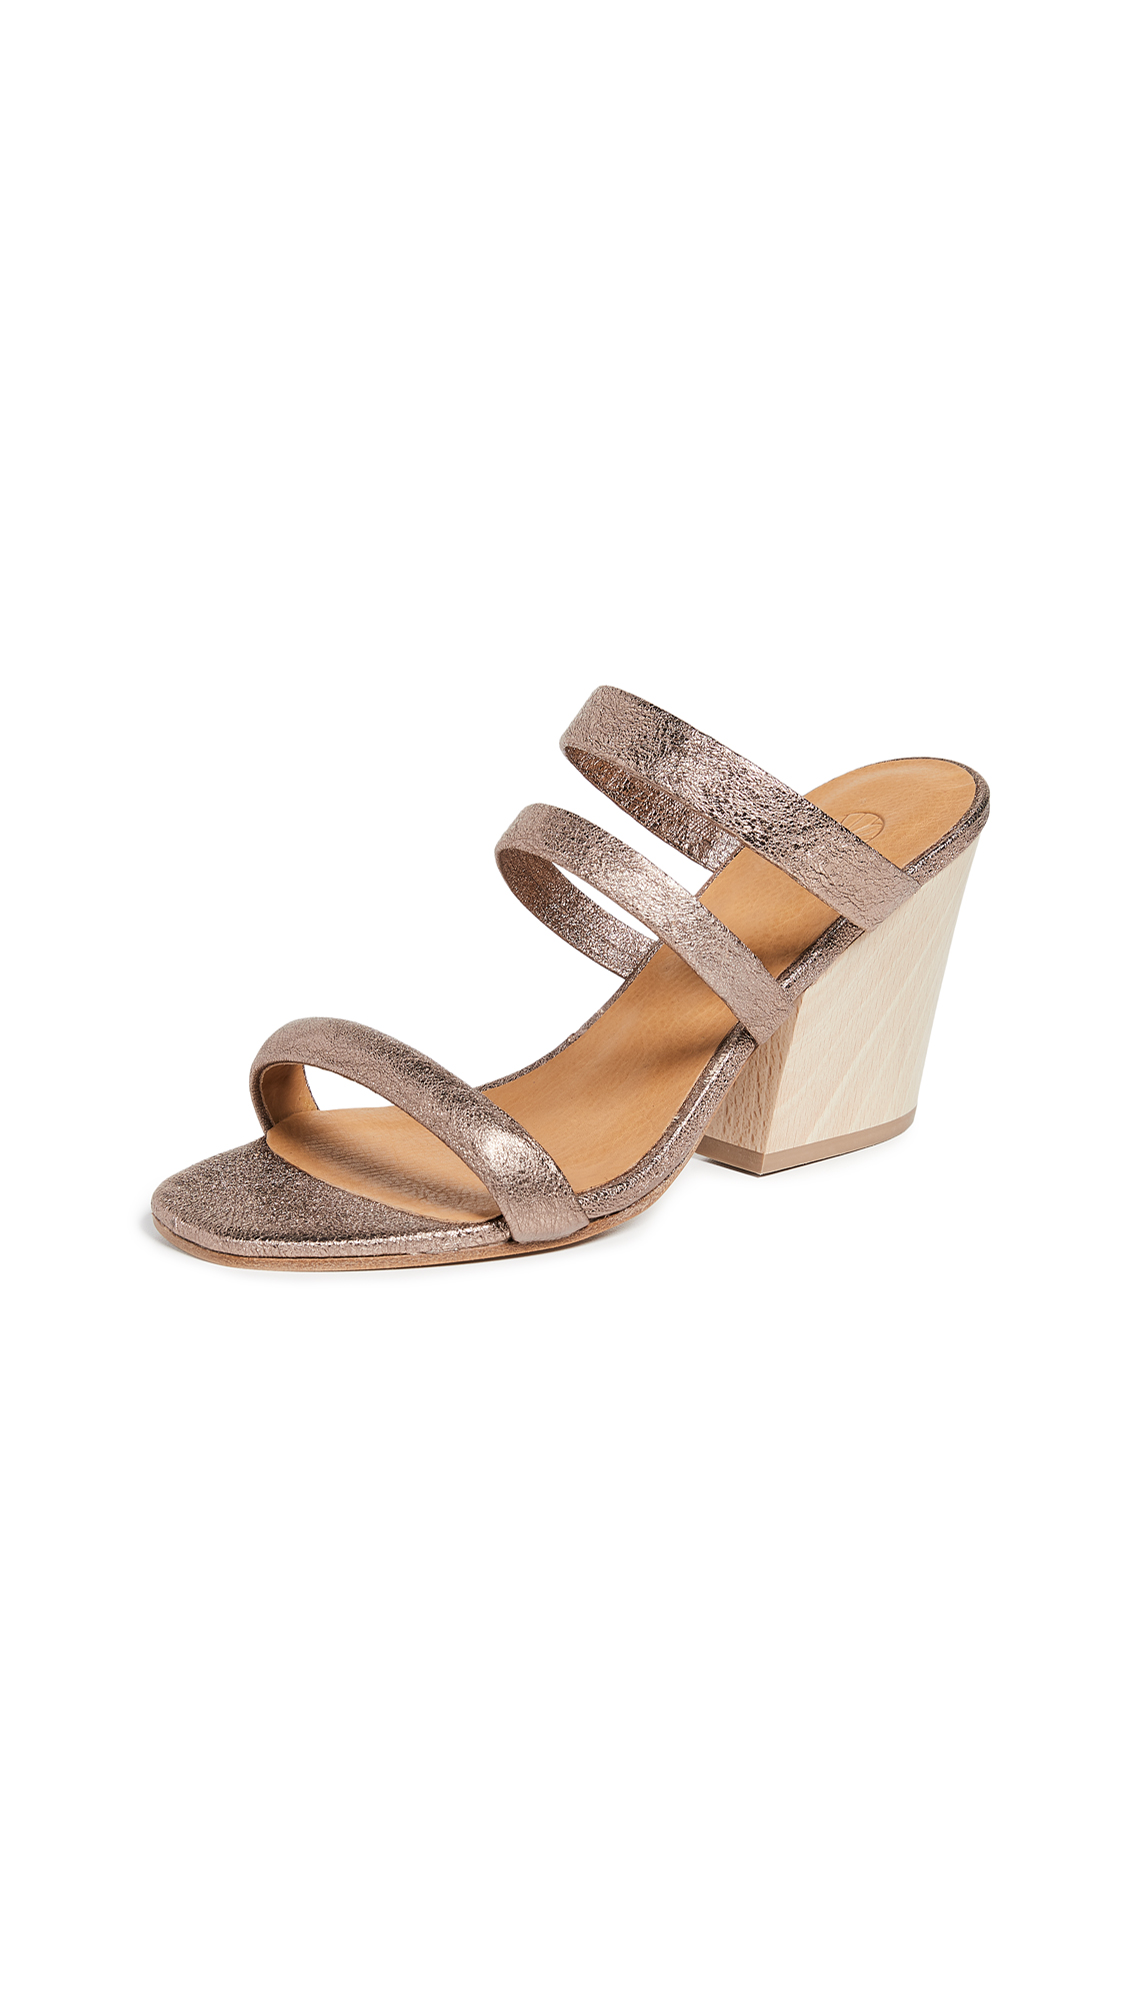 Coclico Shoes Tamara Strappy Mules - Metal Maquillage